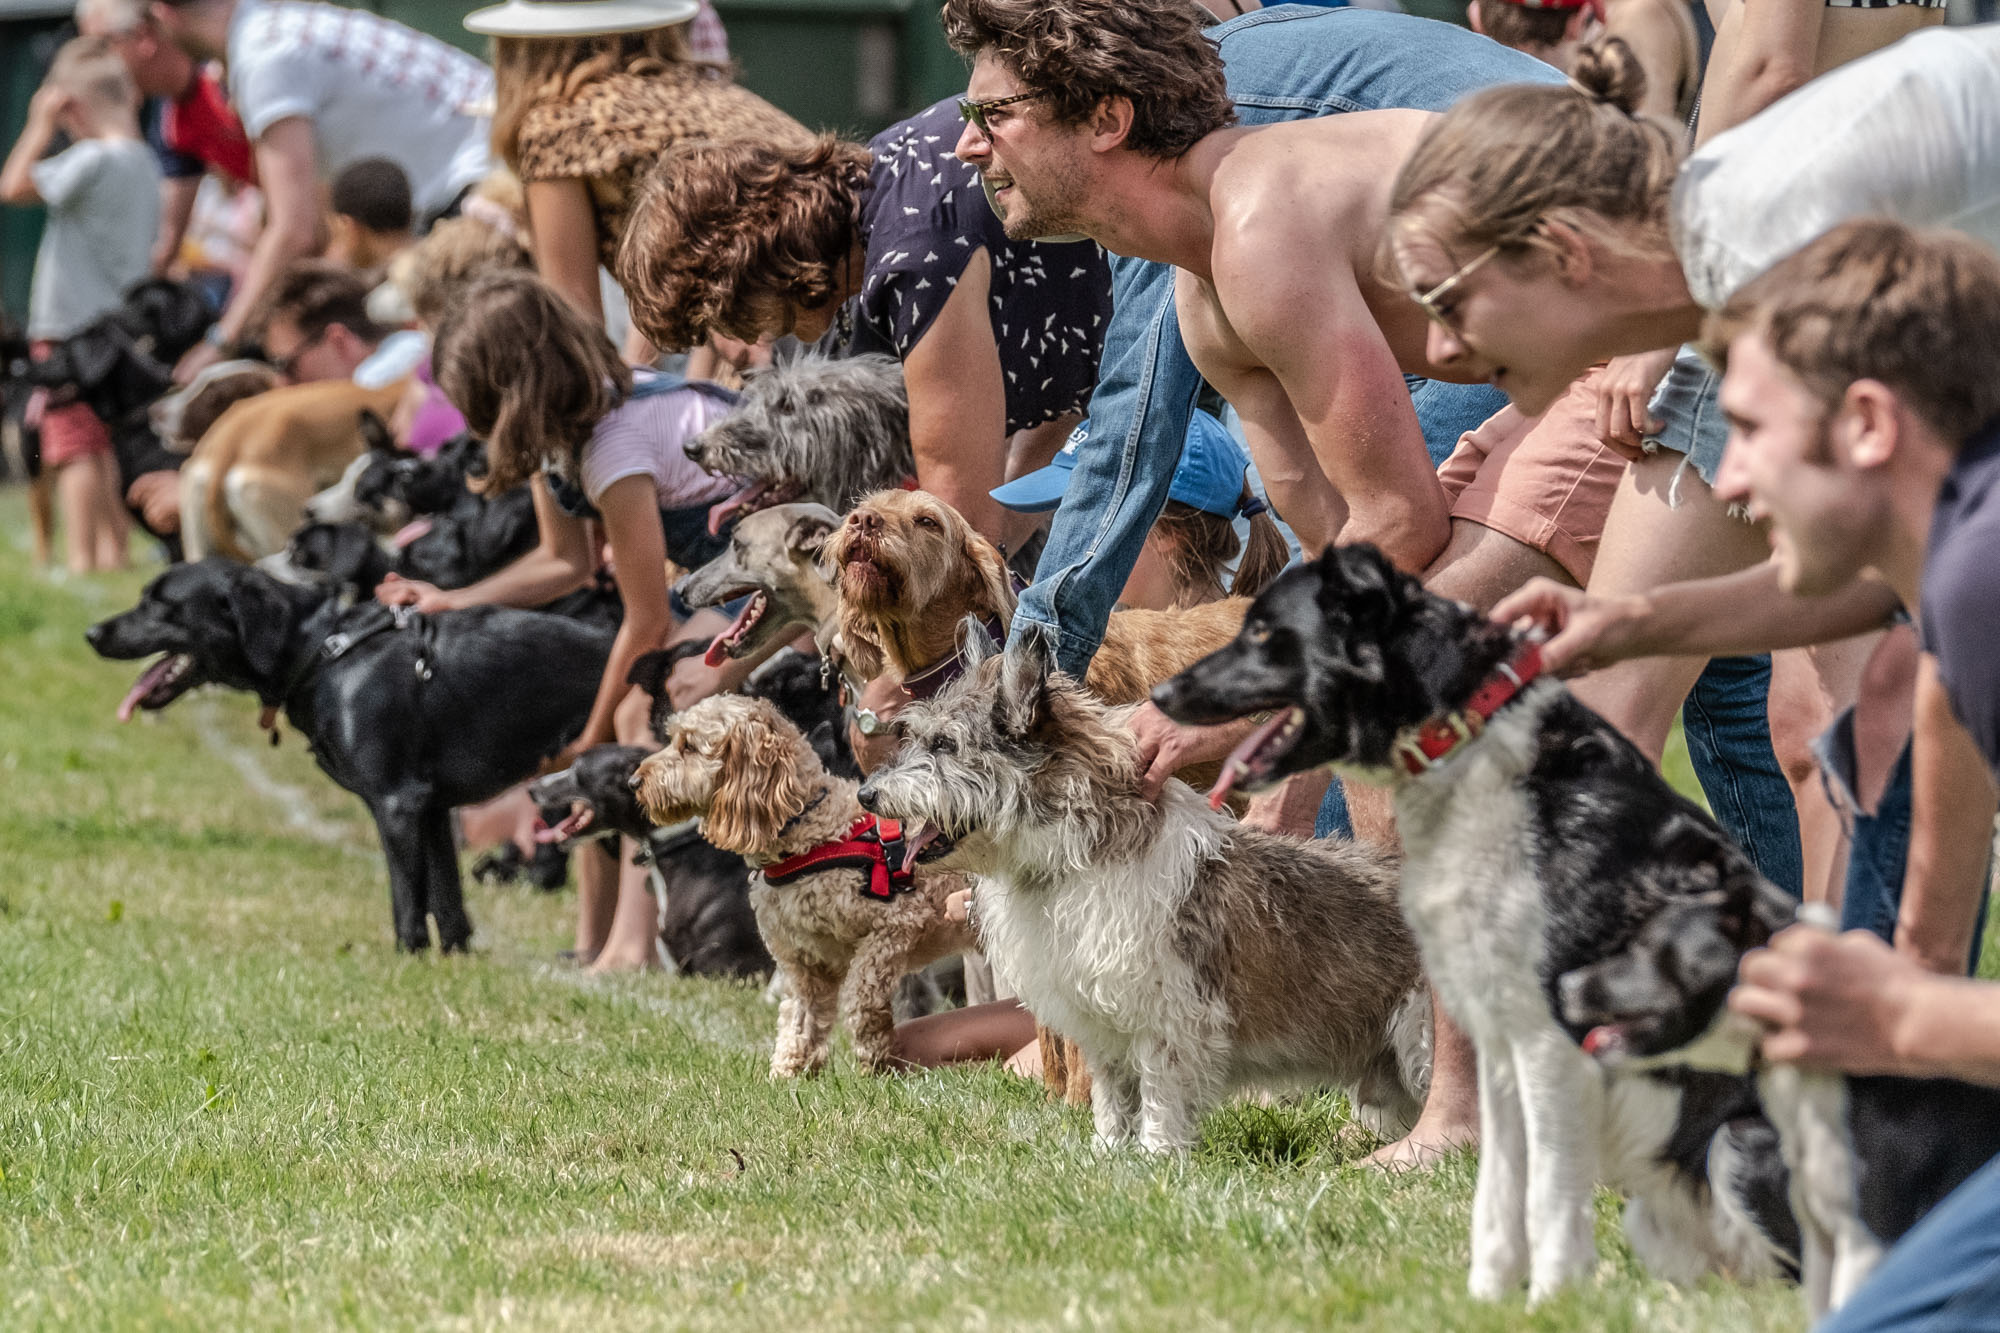 Dog race - ready, get set